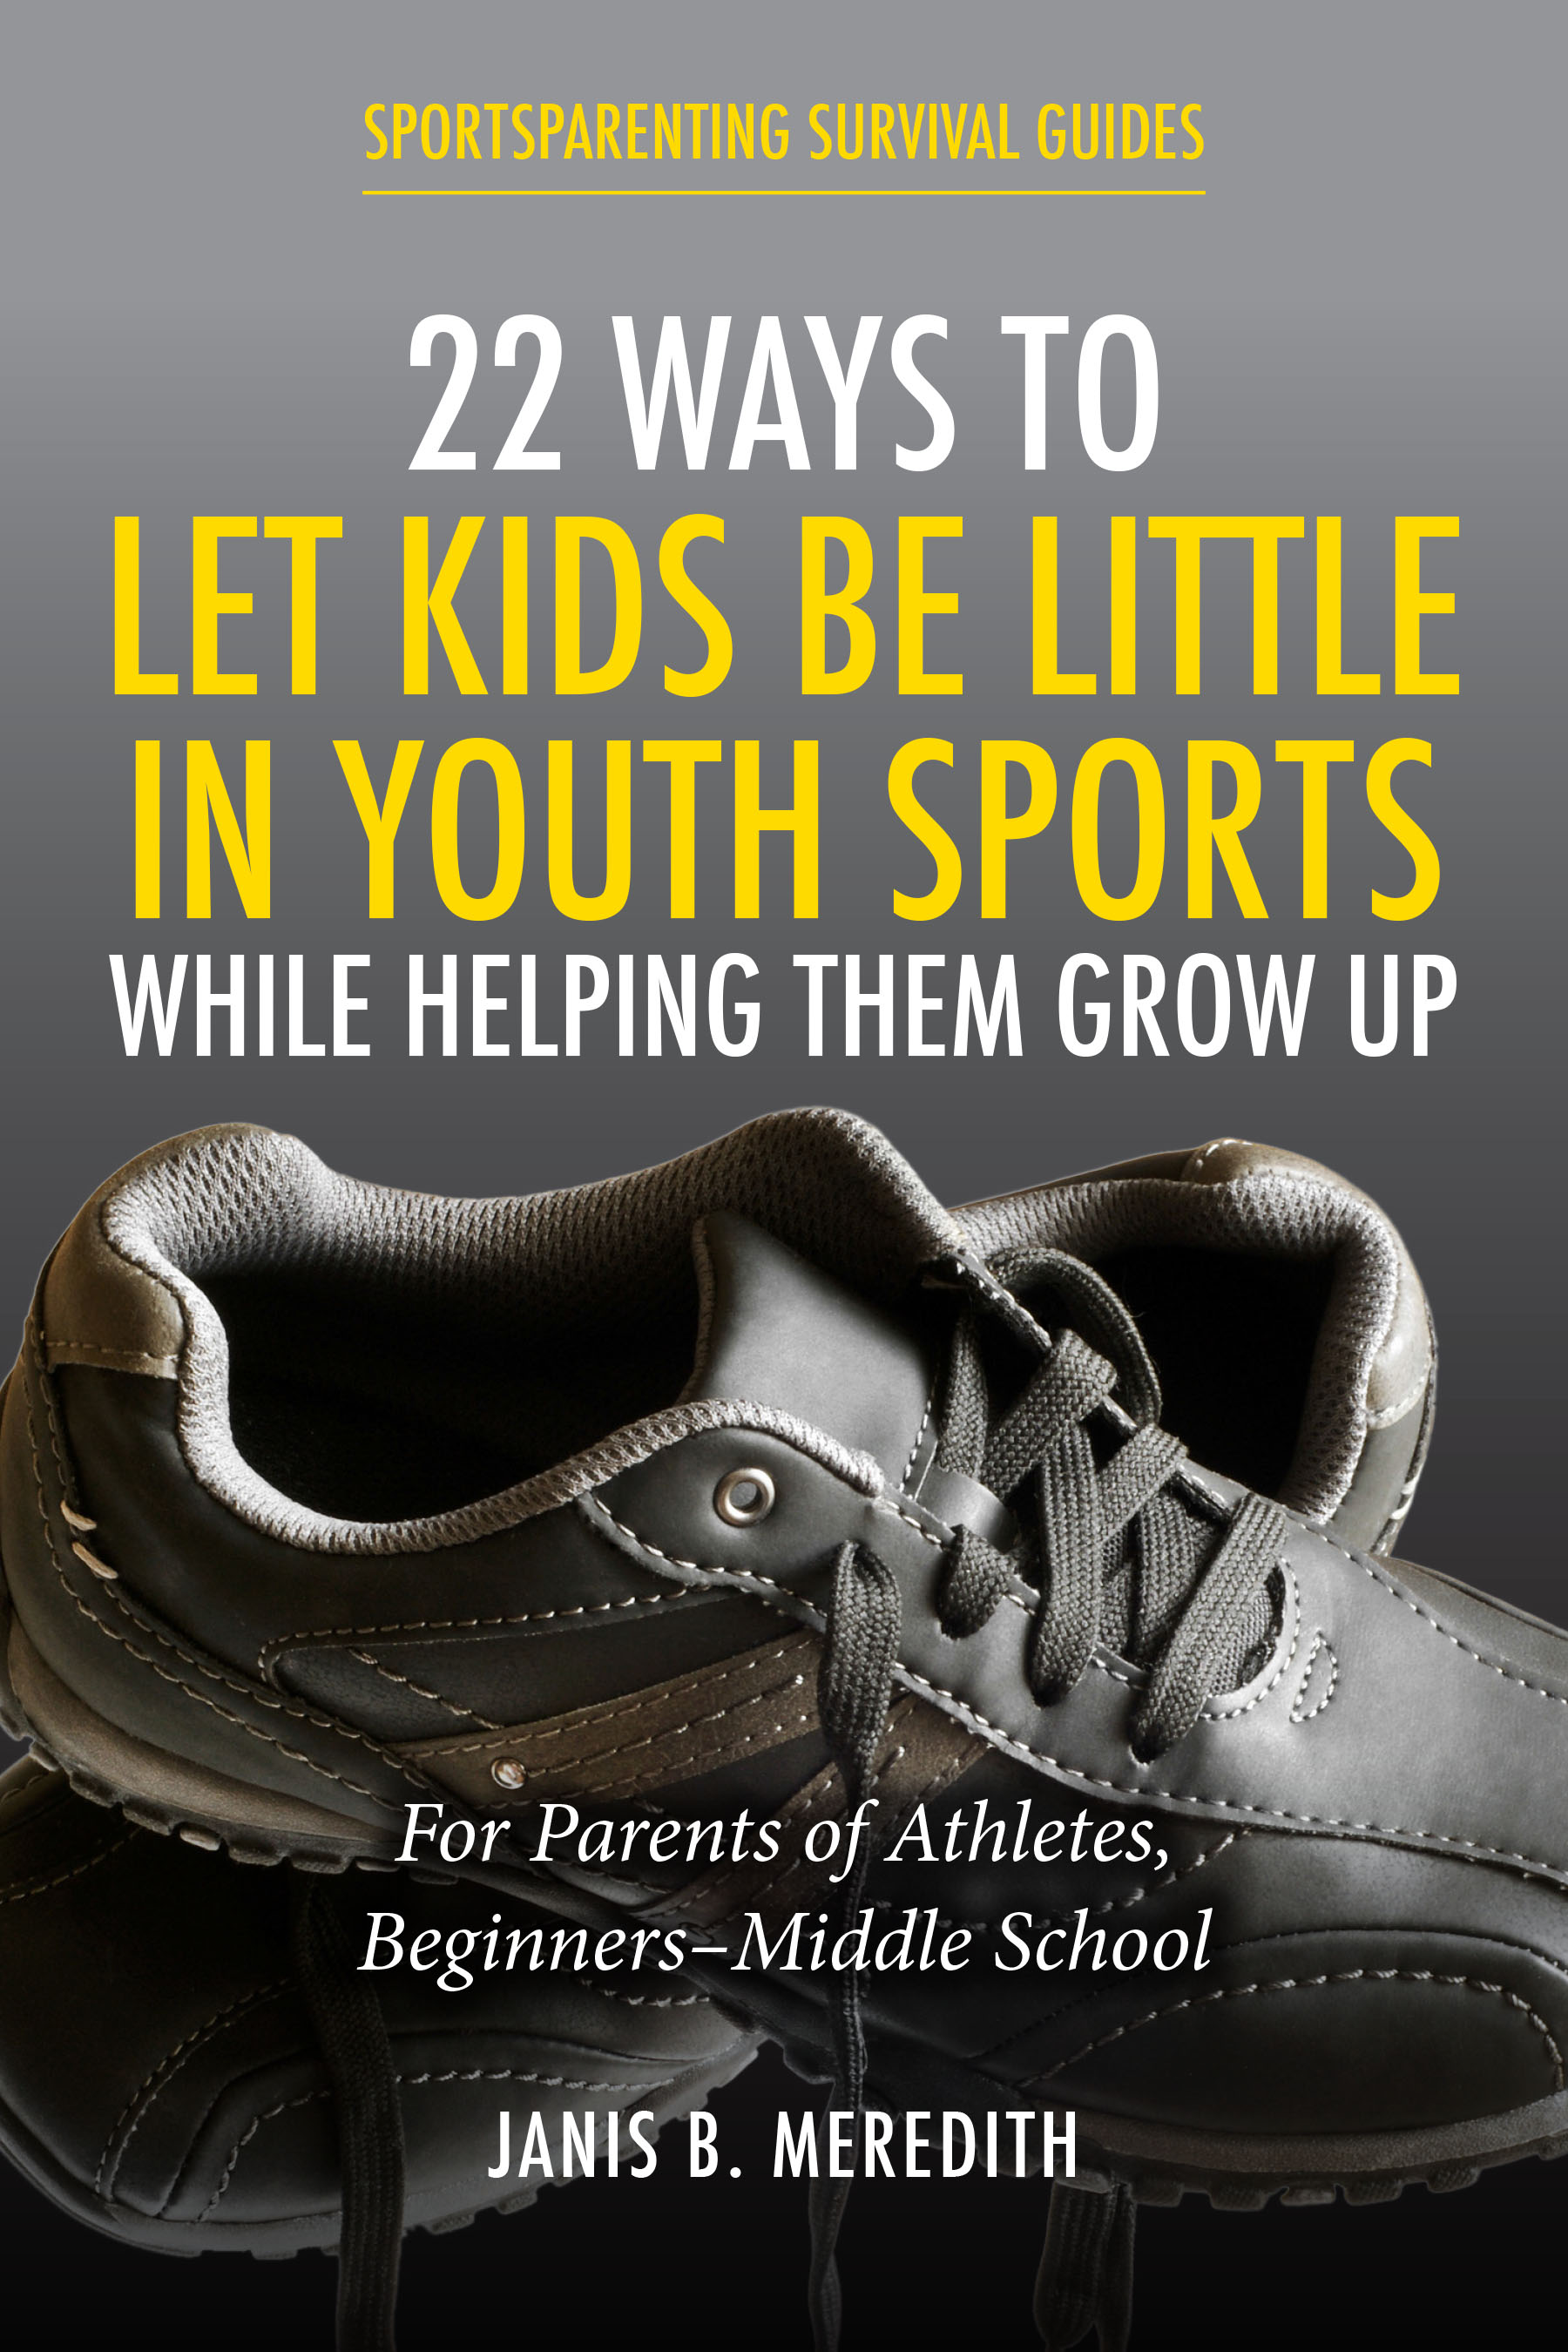 22 Ways to Let Kids be Little in Youth Sports